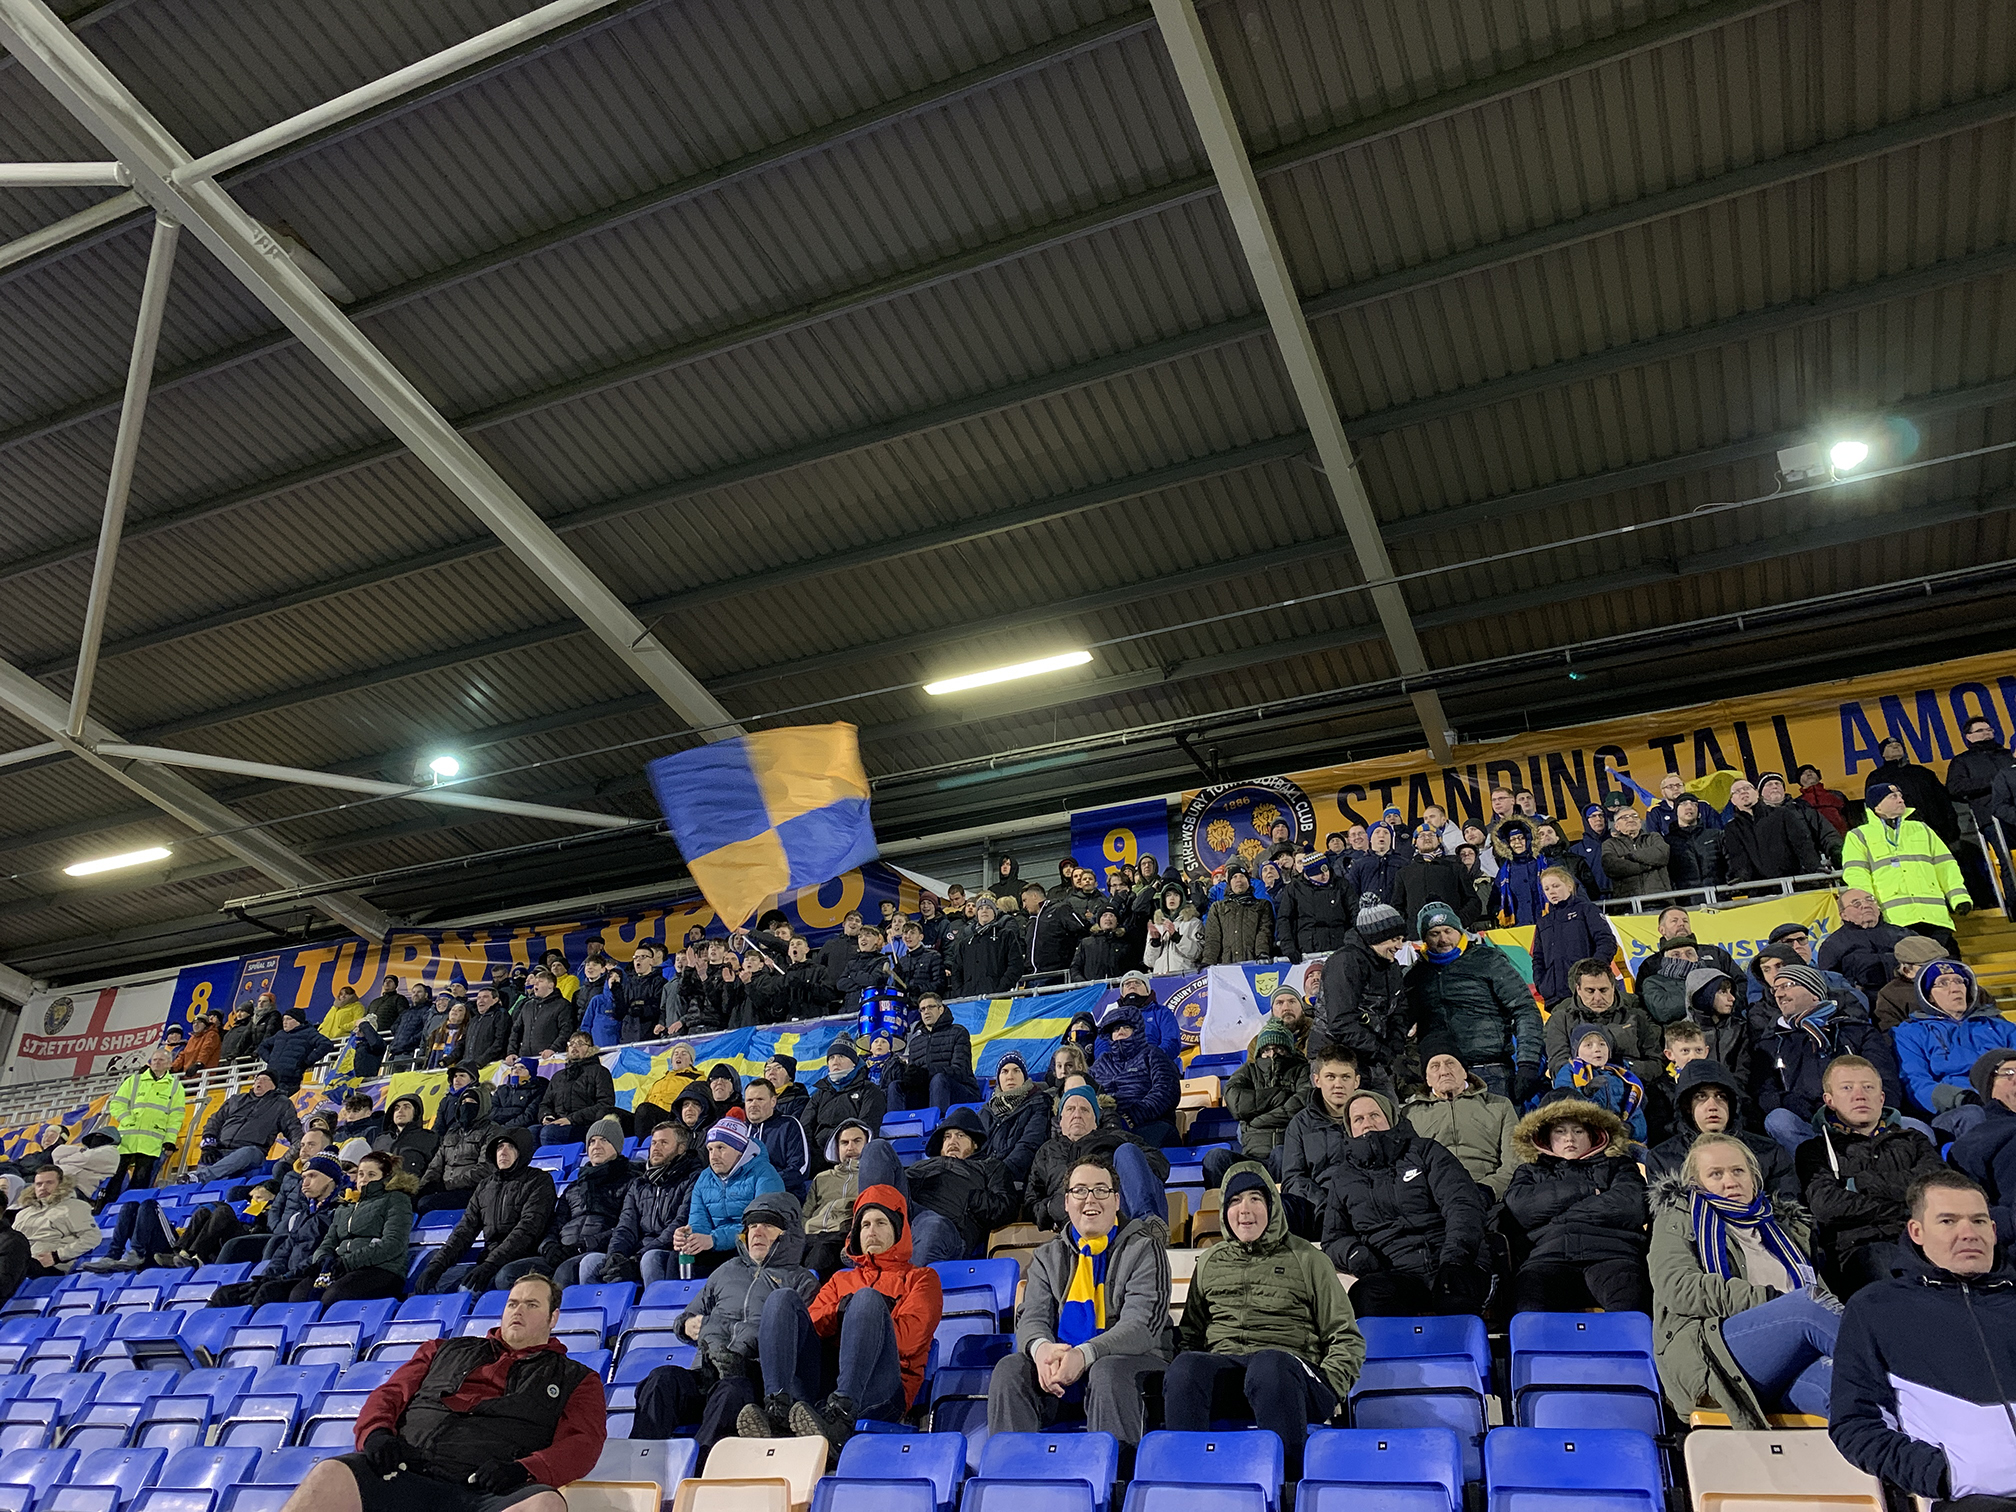 Town supporters cheering on the team